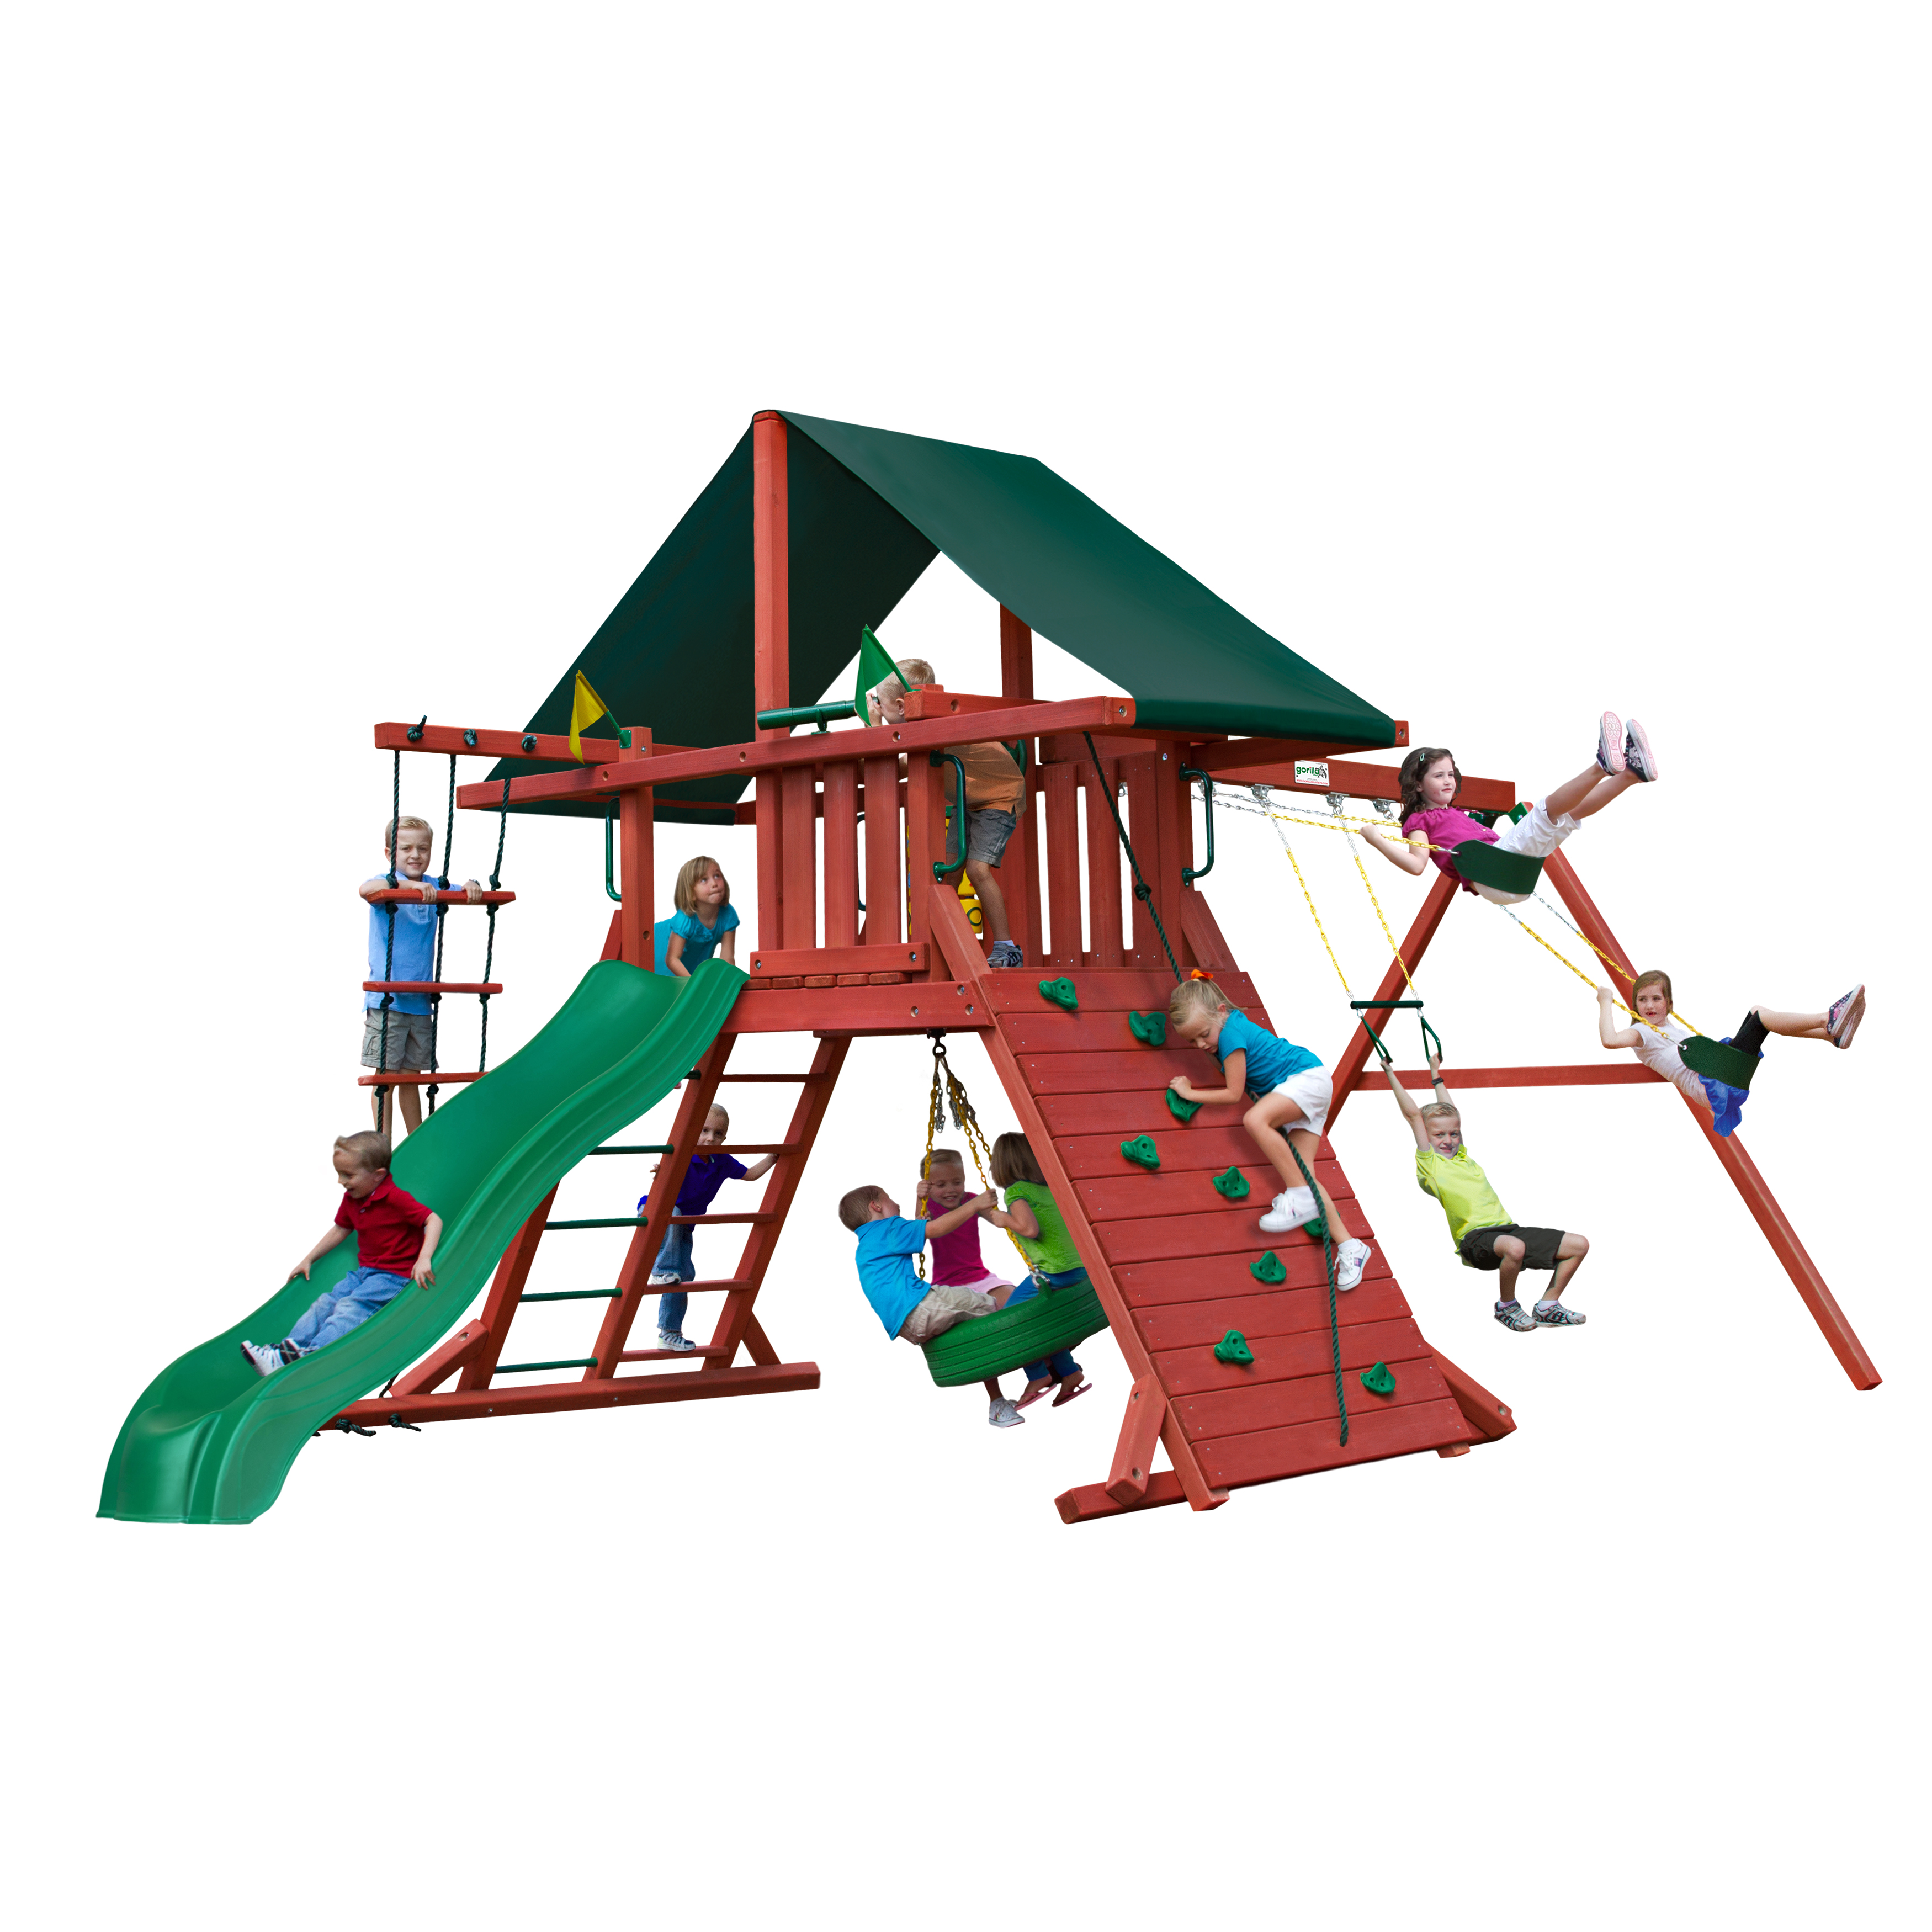 Gorilla Playsets Sun Climber I Wooden Swing Set with Sunbrella® Canvas Canopy, Rock Climbing Wall, and Tire Swing